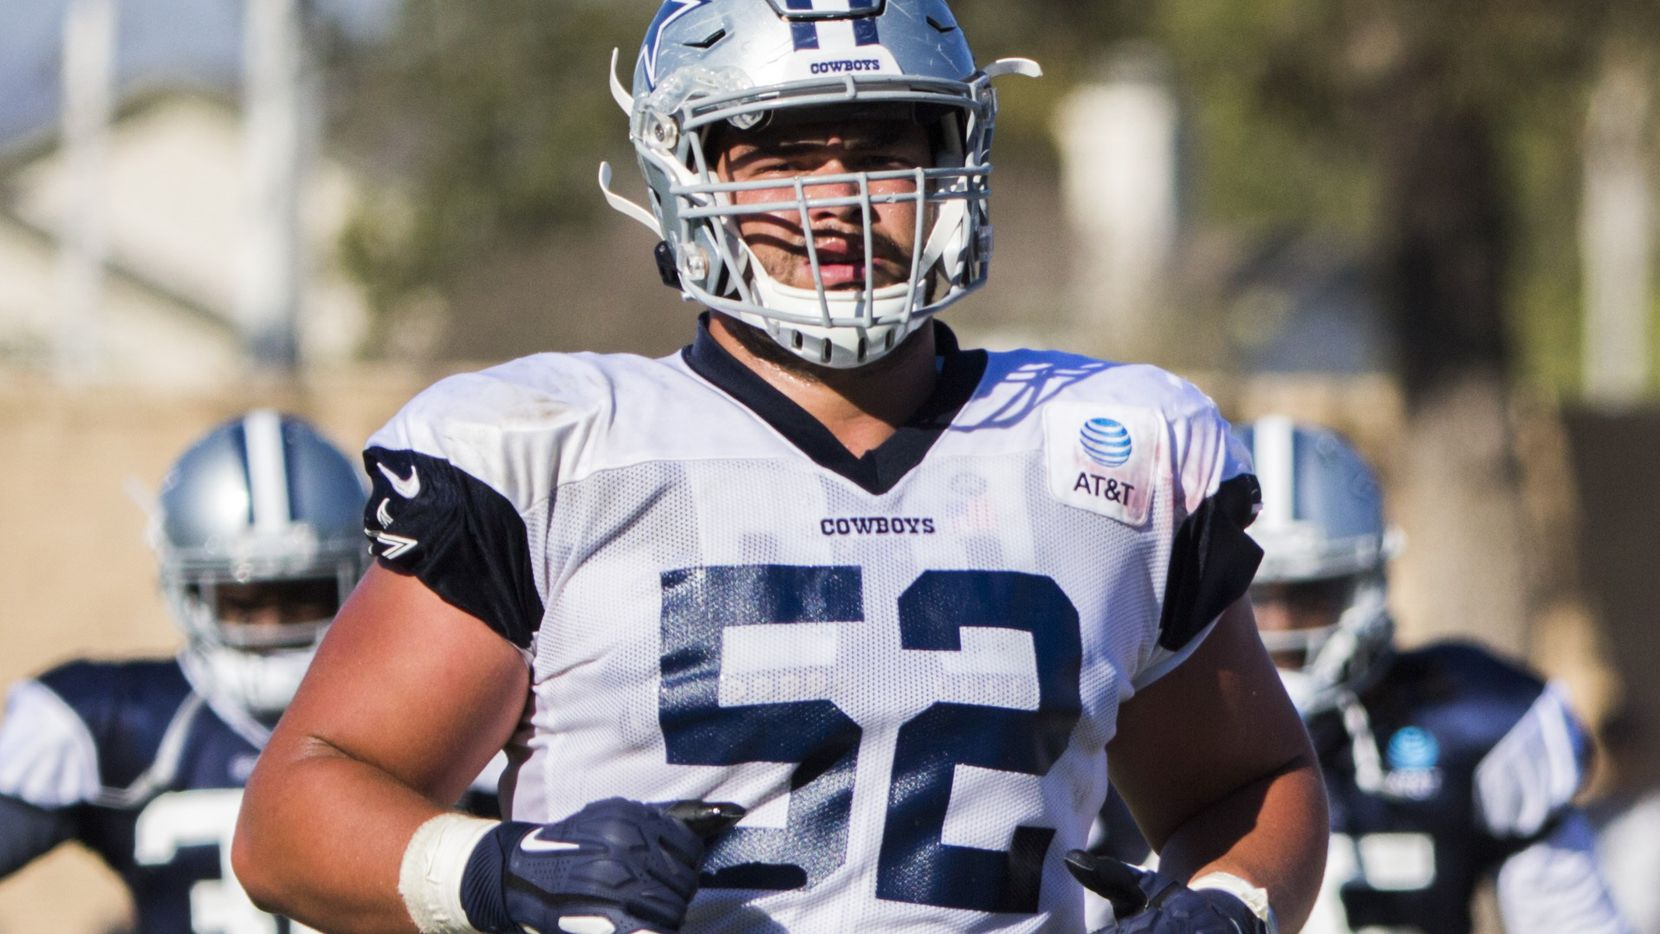 Dallas Cowboys offensive guard Connor Williams (52) runs during an afternoon practice at training camp in Oxnard, California on Thursday, August 1, 2019. (Ashley Landis/The Dallas Morning News)